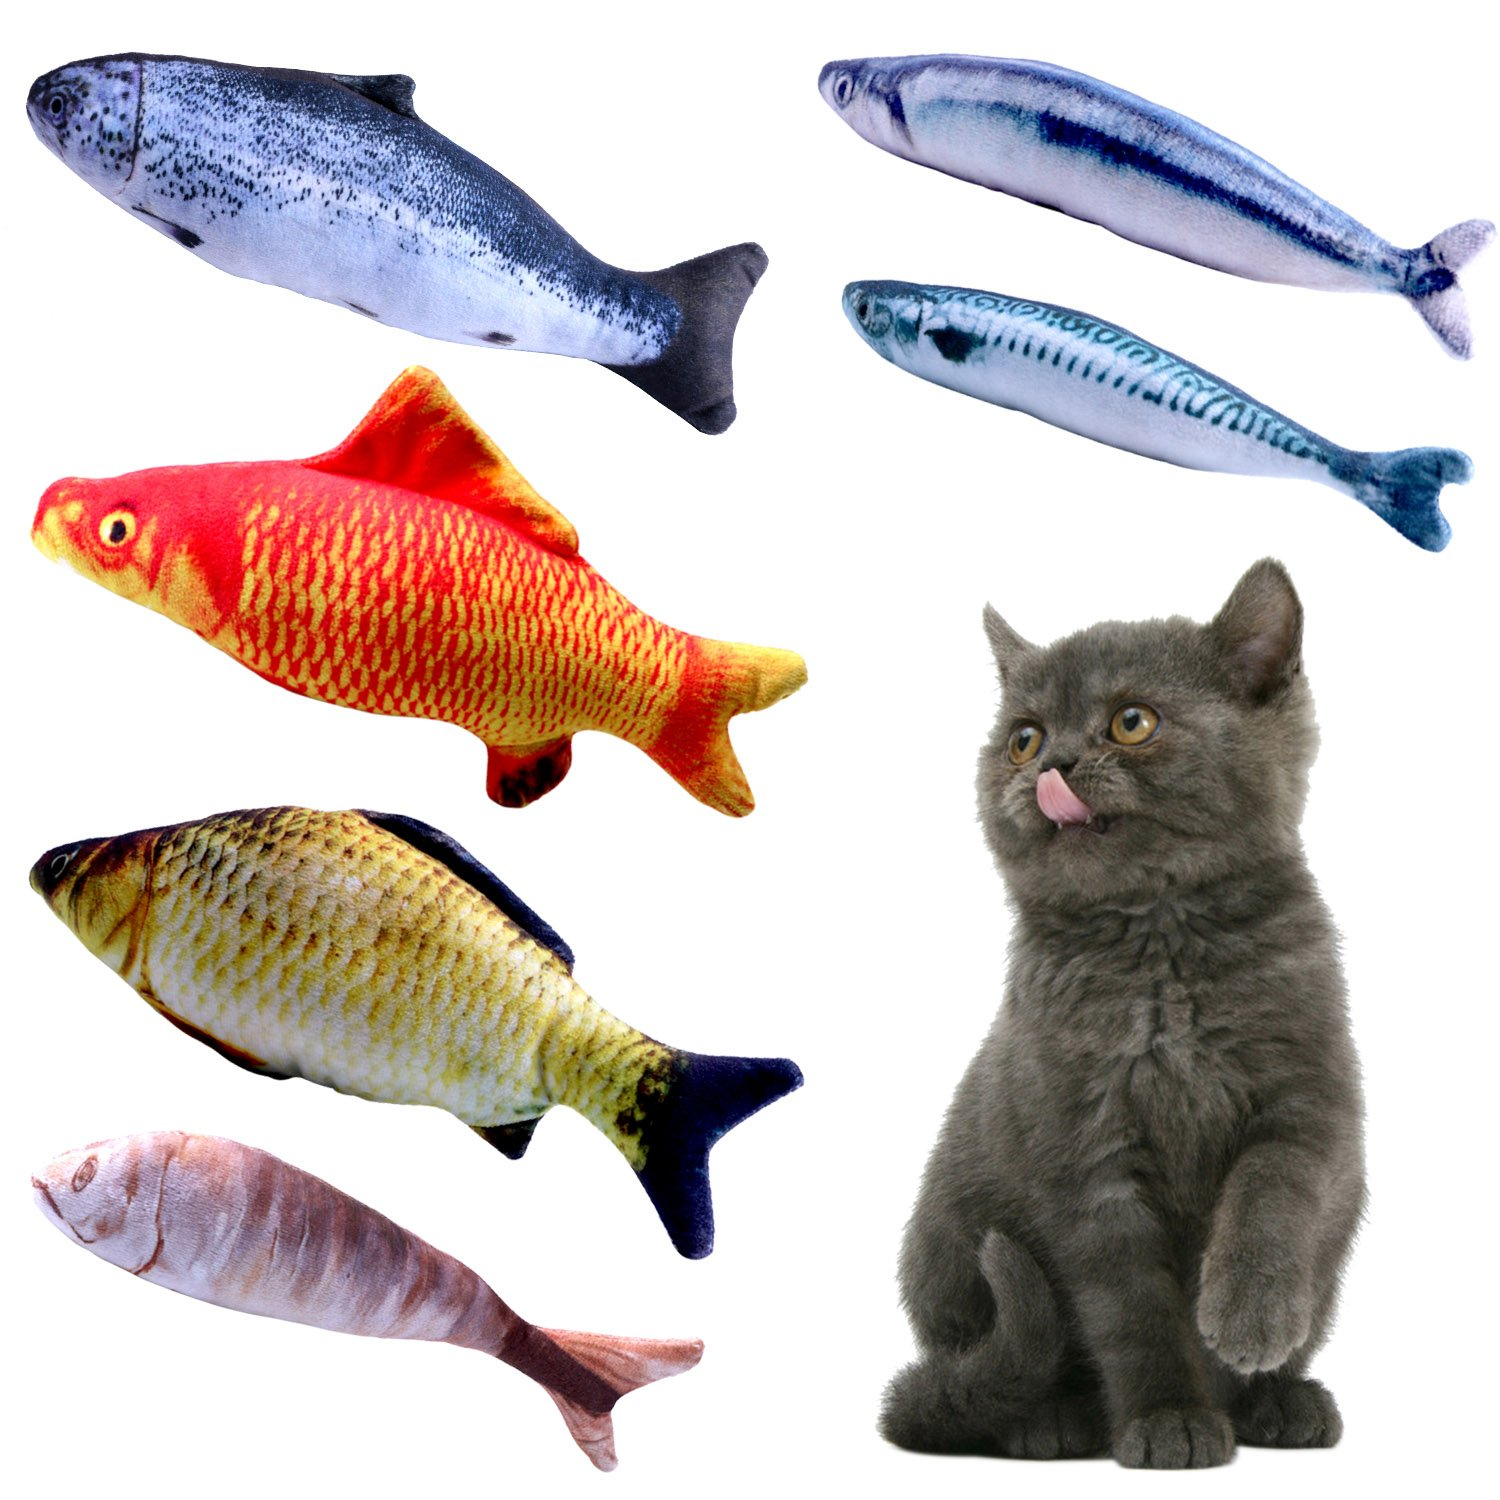 Catnip Toys, Pet Toys for Cats, Cat Toy, Peroom 3 pcs Simulation Fish Plush Cat Interactive Toy Pillow Chew Bite Kick Supplies for Cat Pets